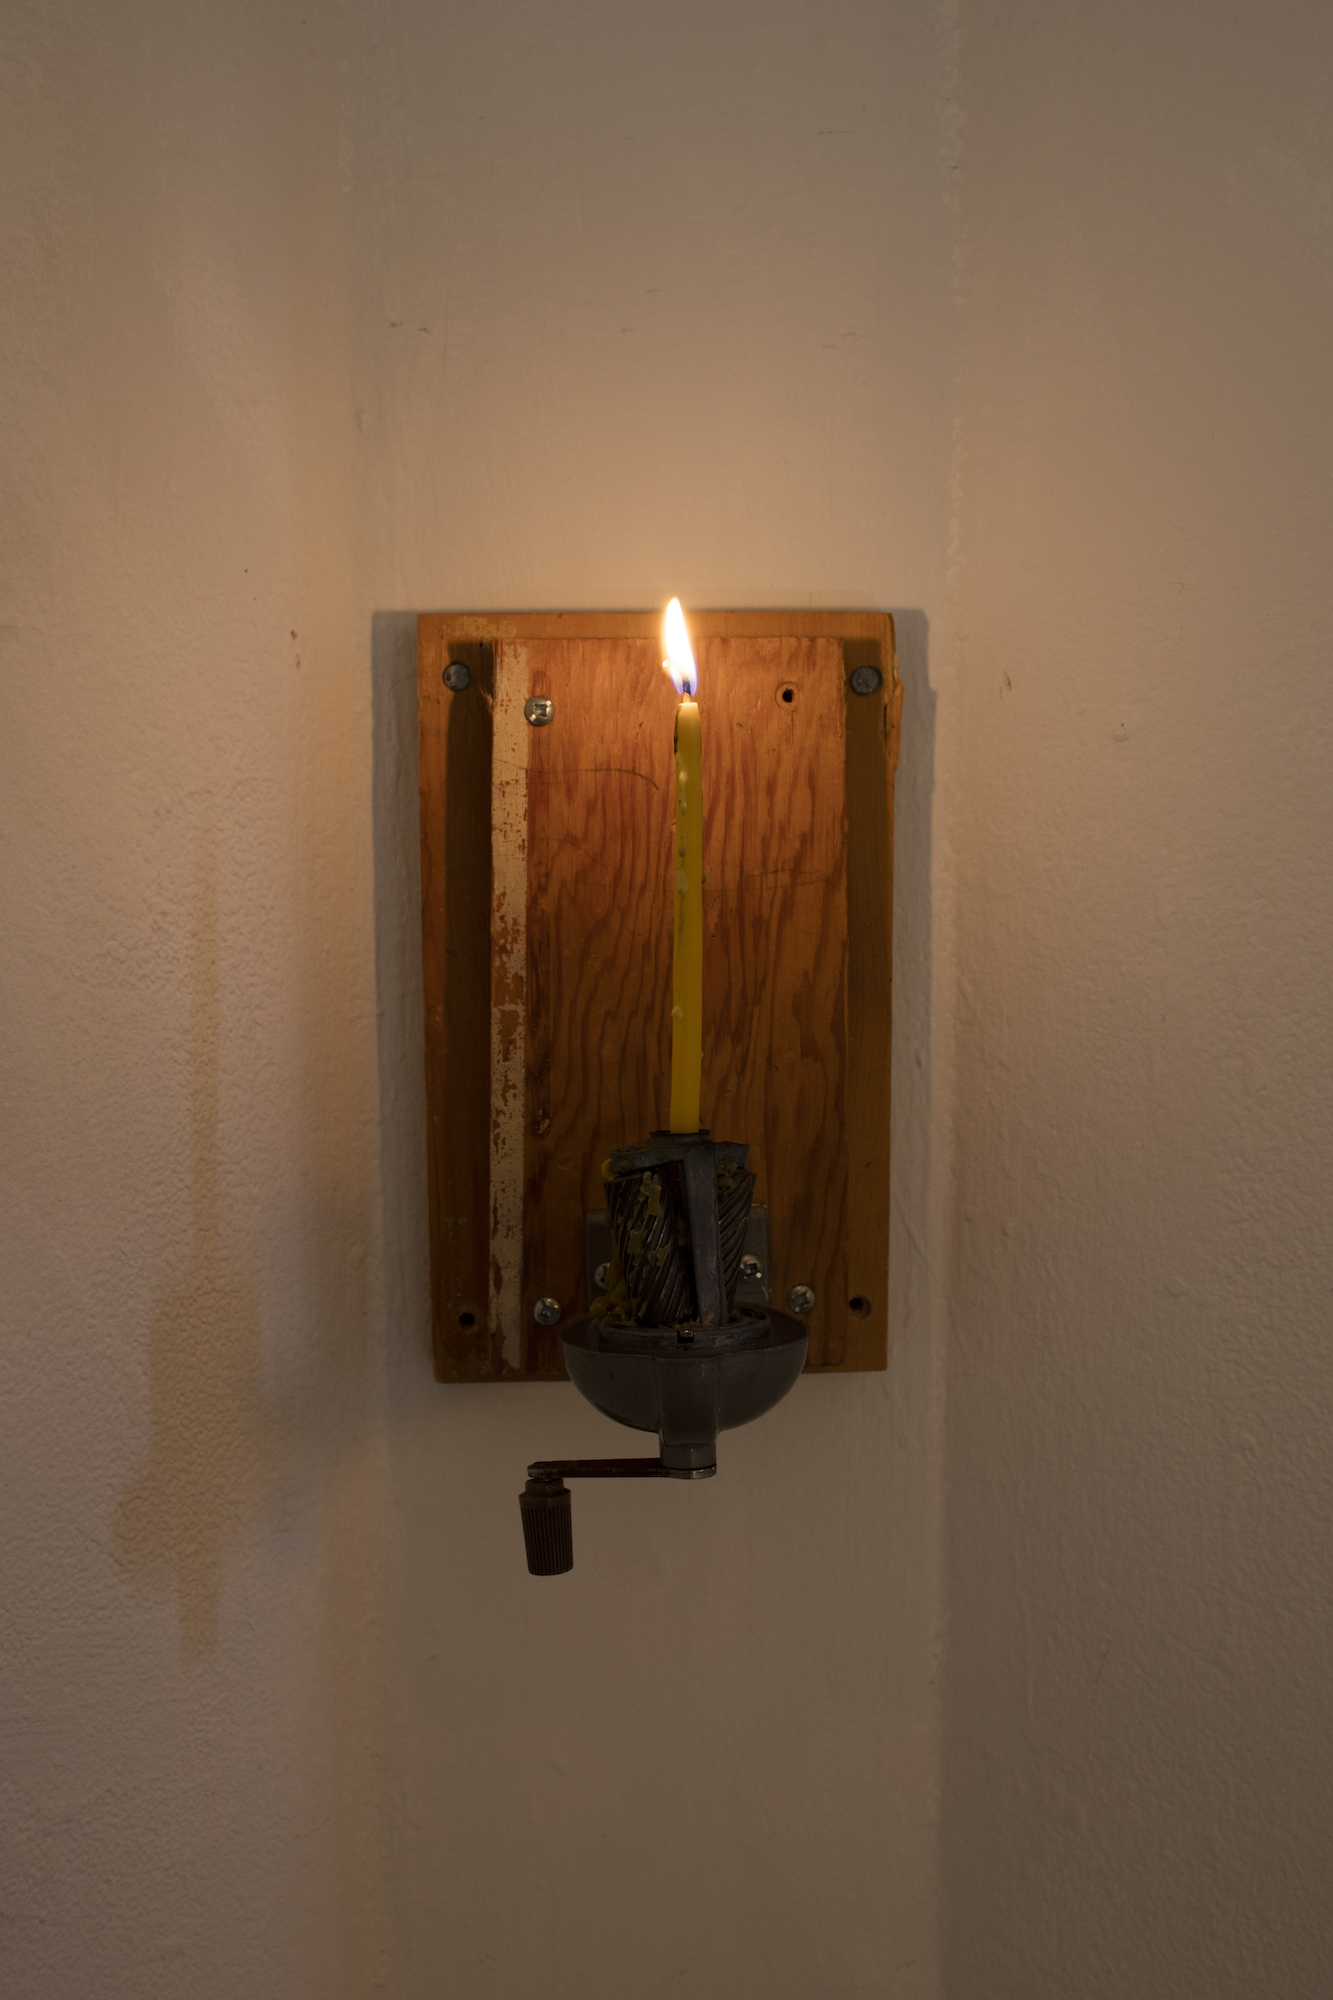 Untitled, 2019, pencil sharpener, beeswax candle by Maya Inglis, wood, 5.5 x 9 inch.